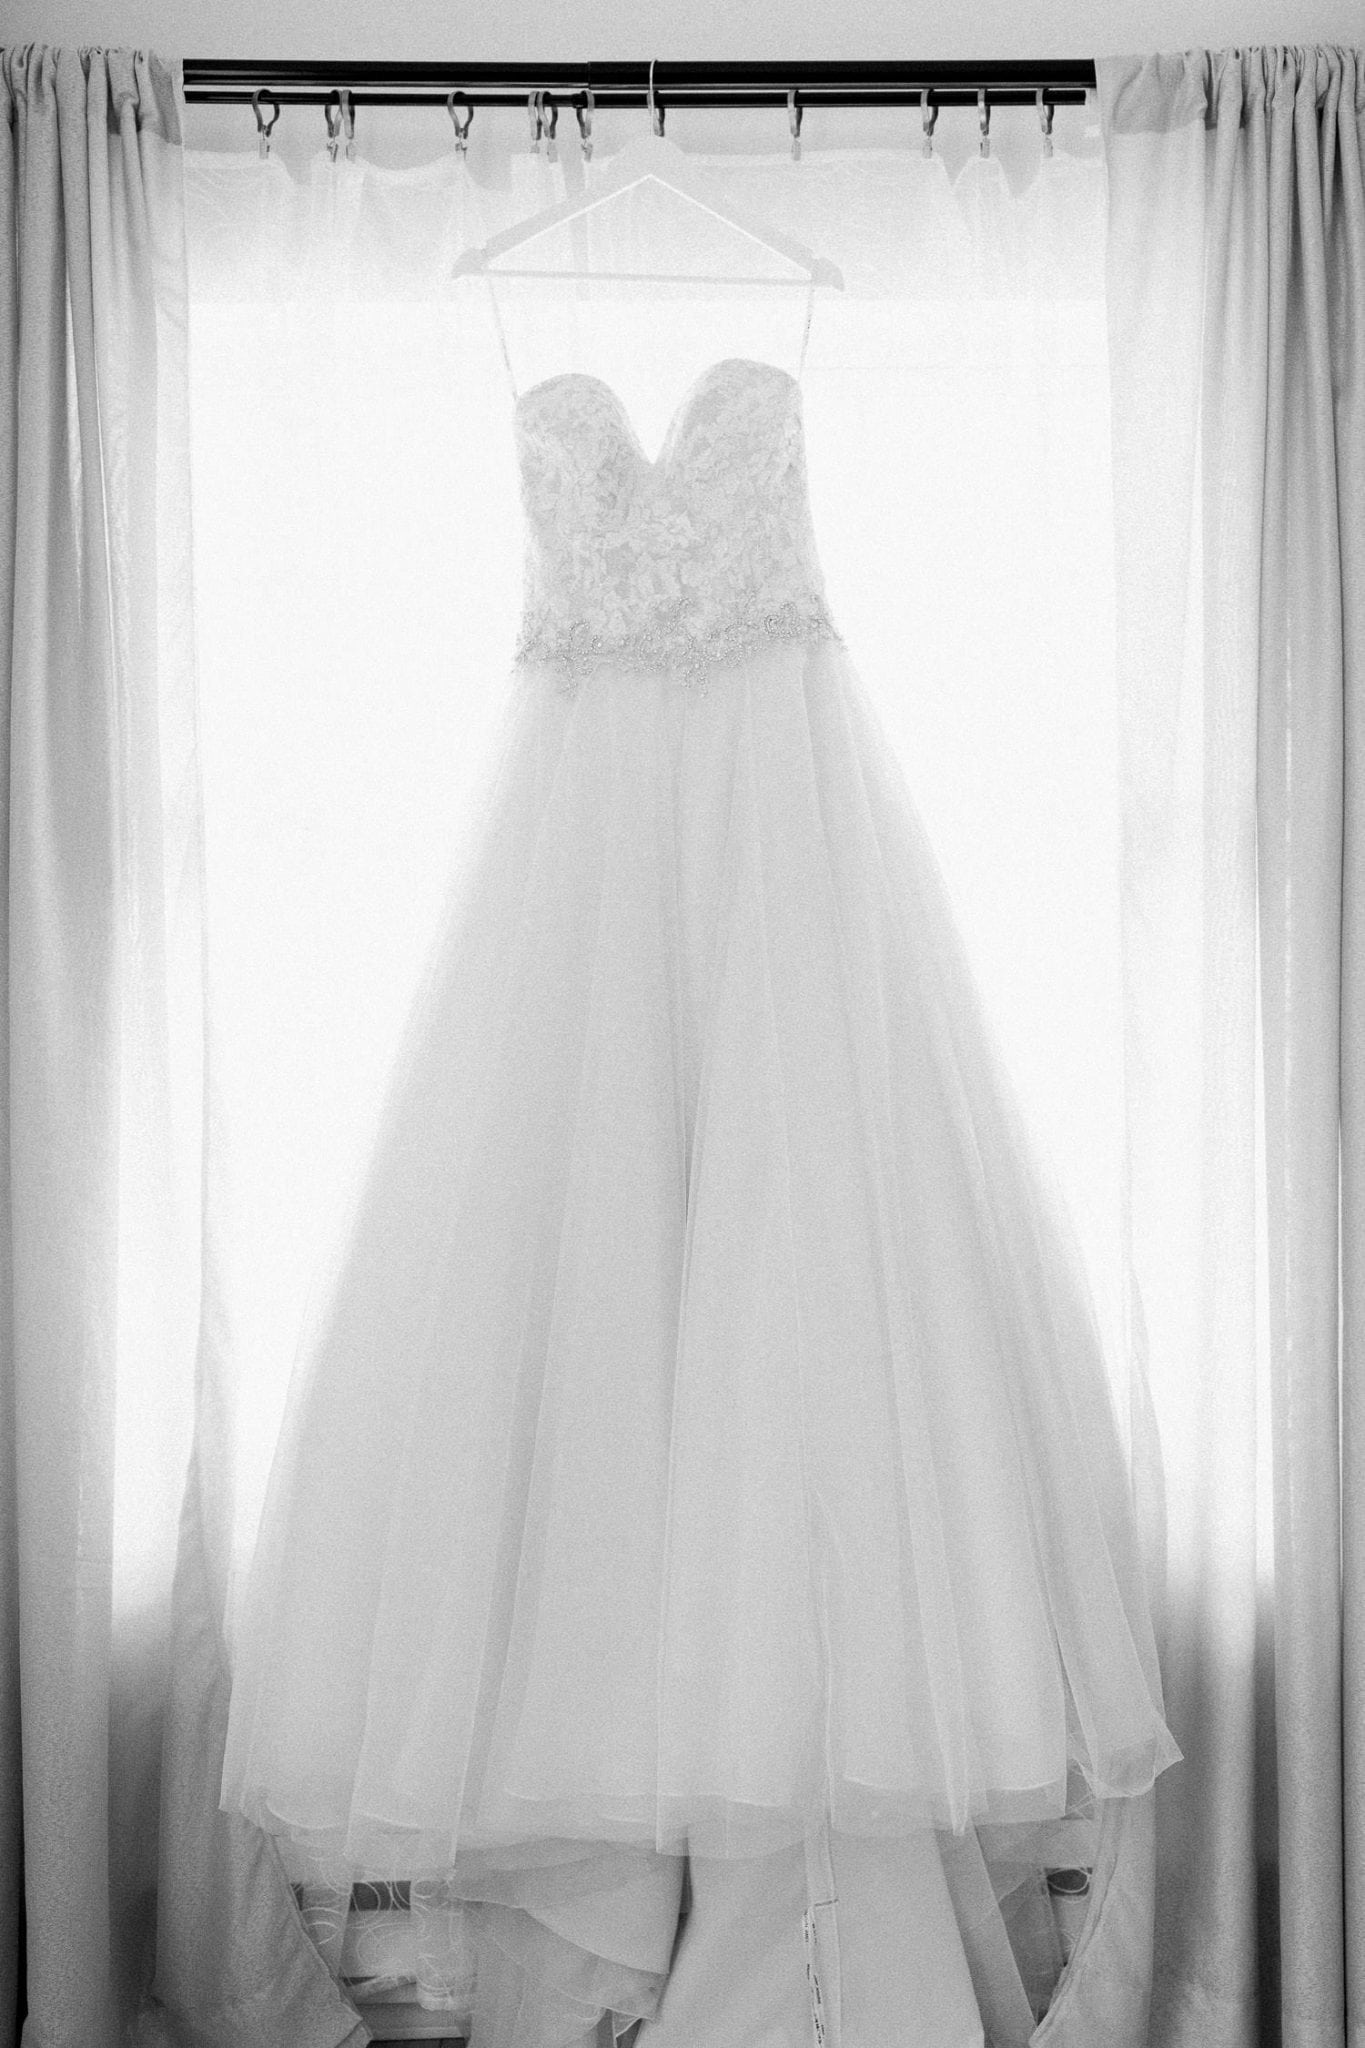 Picture of the wedding dress hanging in front of the window in b/w | Vancouver wedding photographer | Westwood Plateau Golf Club Wedding